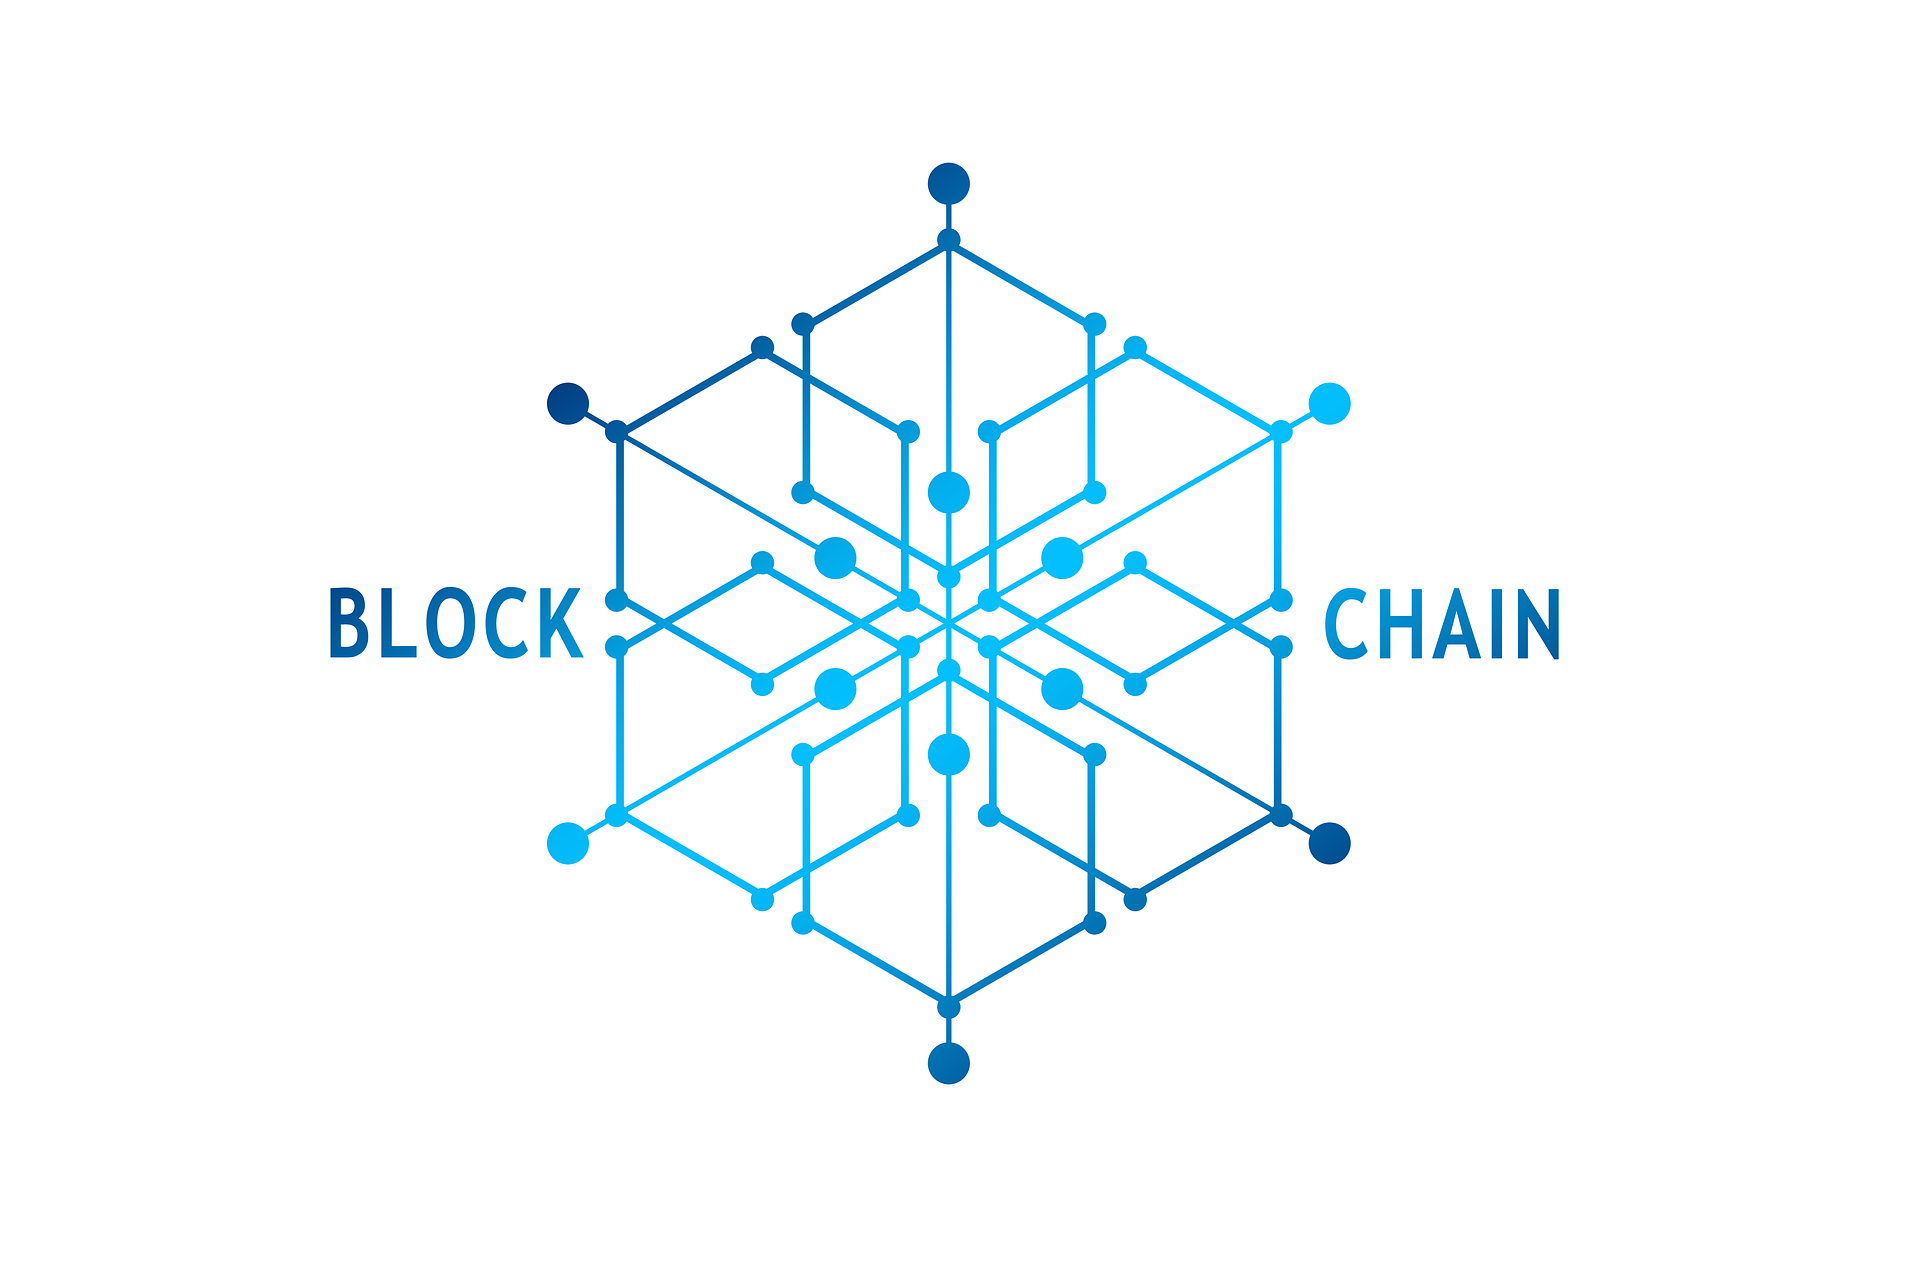 block chain 3052119 1920 - Was ist Blockchain